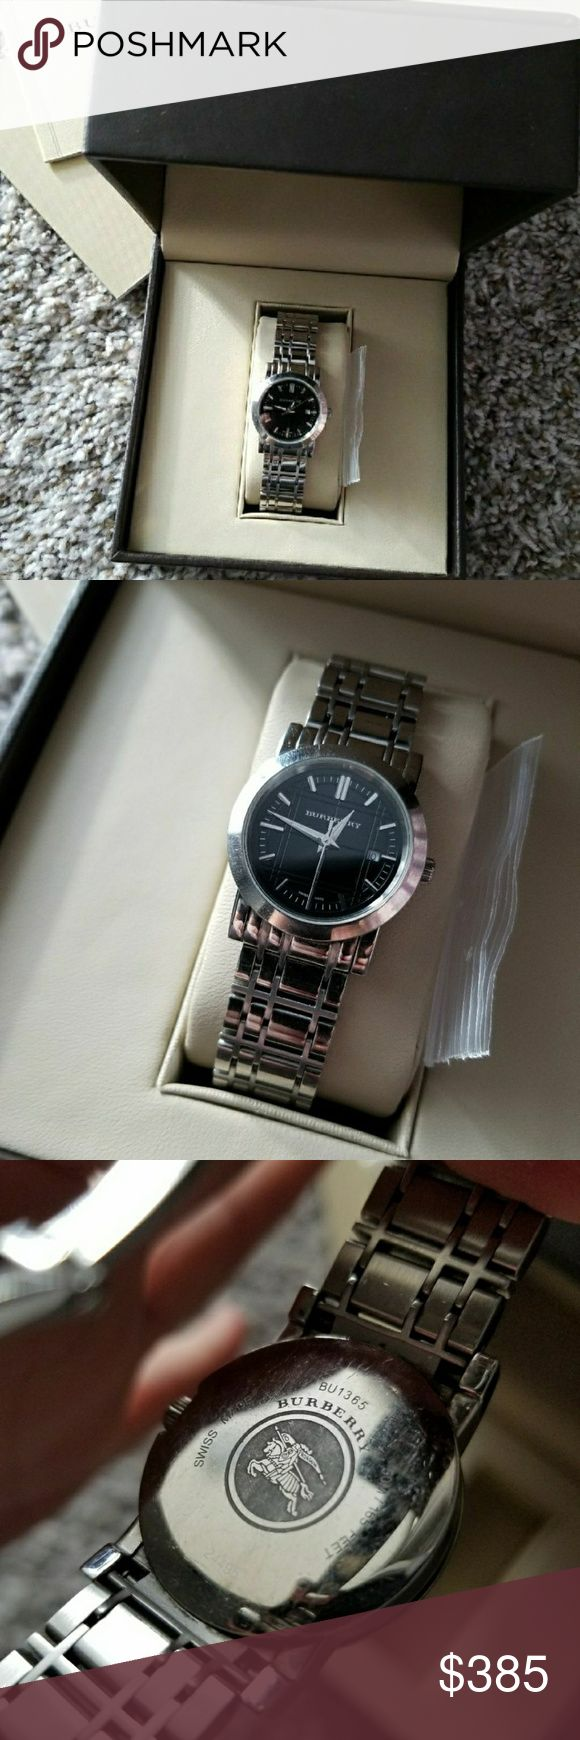 Burberry Women's Silver Watch Great used condition.  Comes with everything pictured.  Battery still works.  One link has been removed but can be or back on.  Needs a little cleaning from jeweler. TV$500 Burberry Accessories Watches